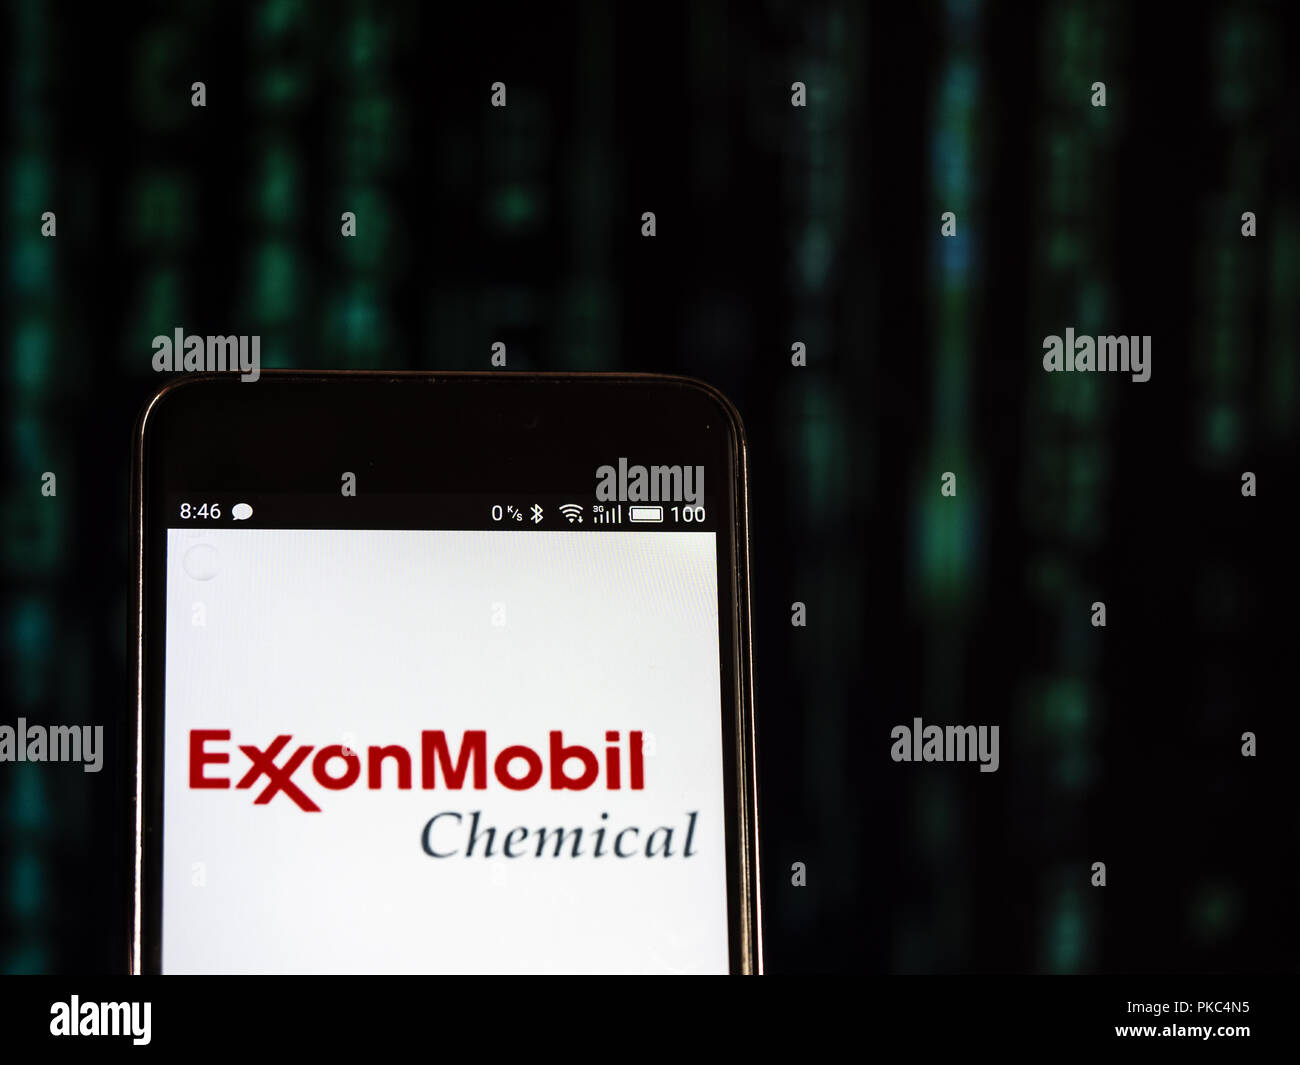 Kiev, Ukraine. 12th Sep, 2018. Exxon Mobil logo seen displayed on a smart phone. Credit: Igor Golovniov/SOPA Images/ZUMA Wire/Alamy Live News - Stock Image